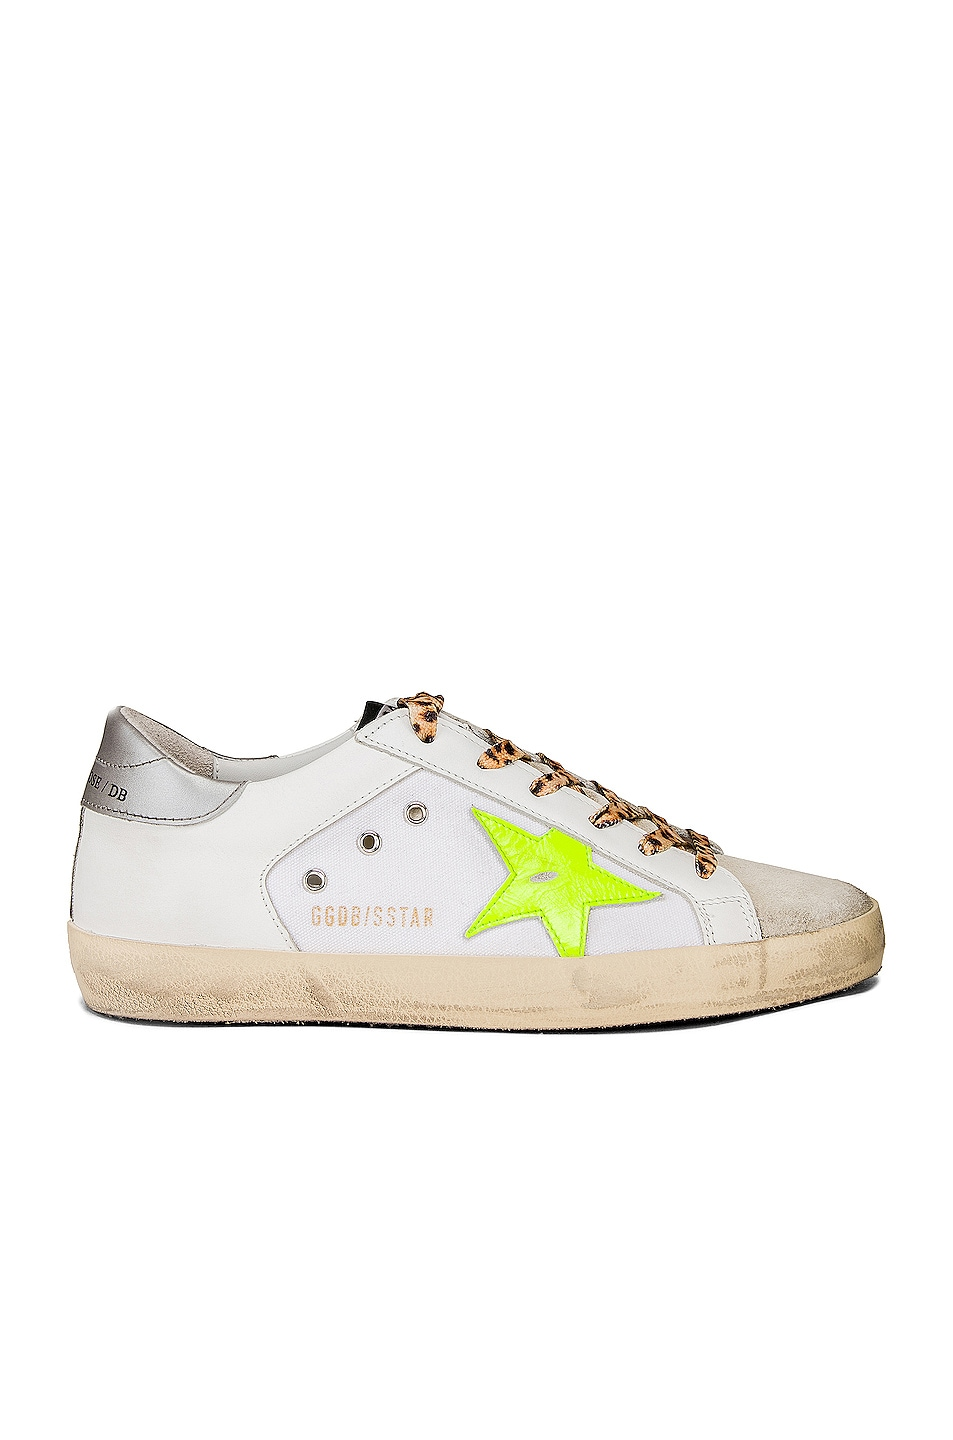 Image 1 of Golden Goose Leopard Lace Superstar Sneakers in White Canvas & Fluorescent